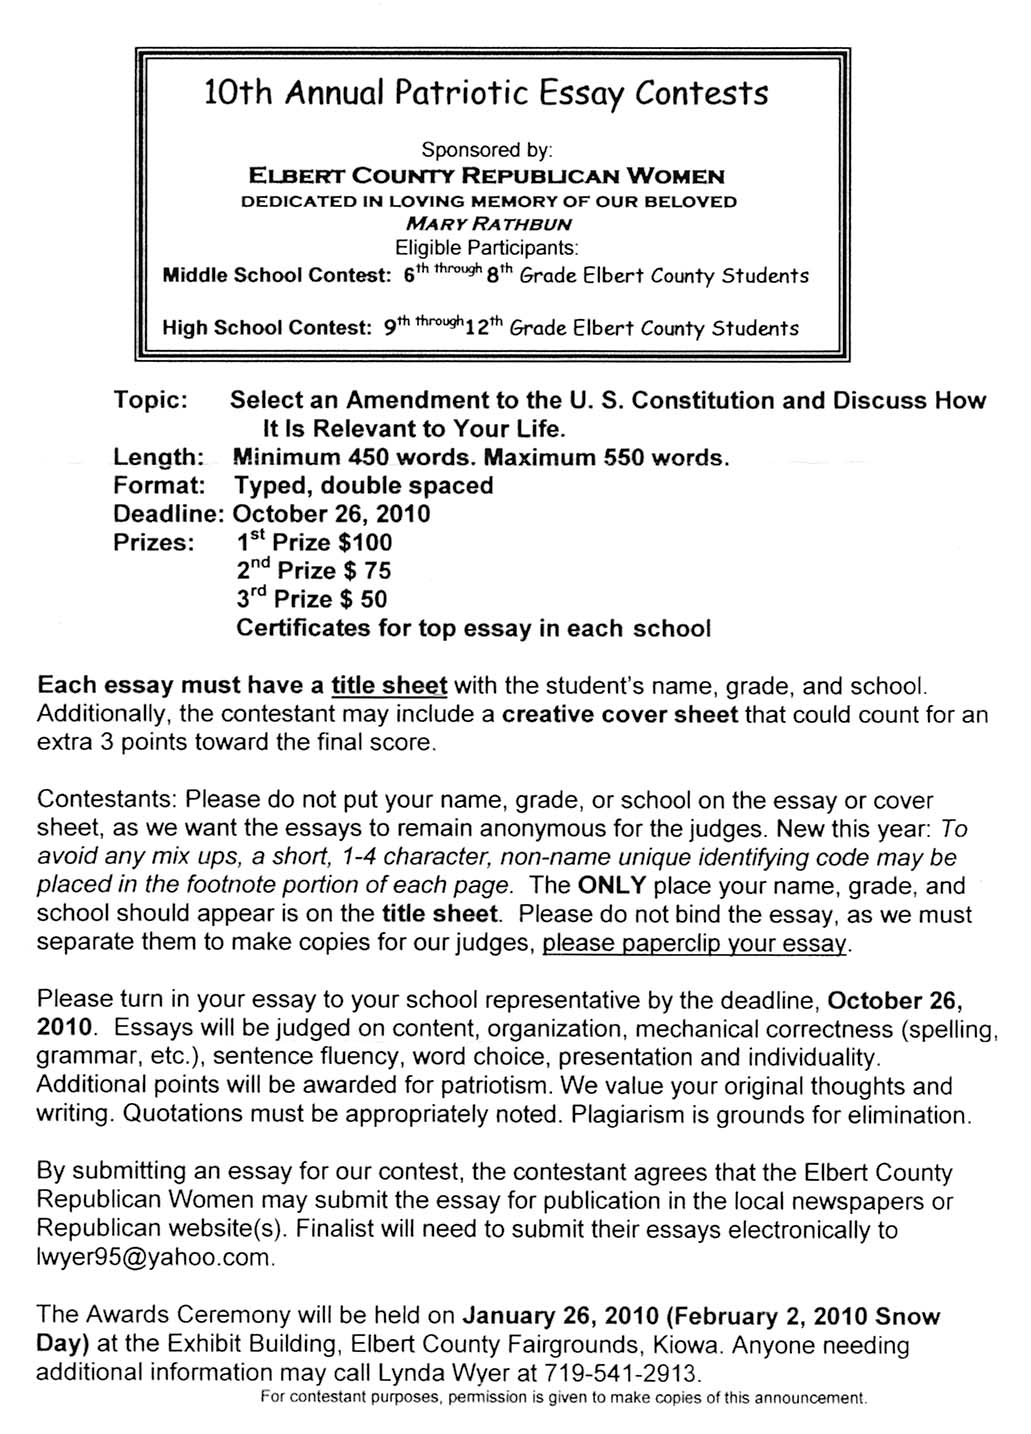 essay about the constitution write my persuasive essay about my  constitution elbert county forum 10th annual patiotic essay contest